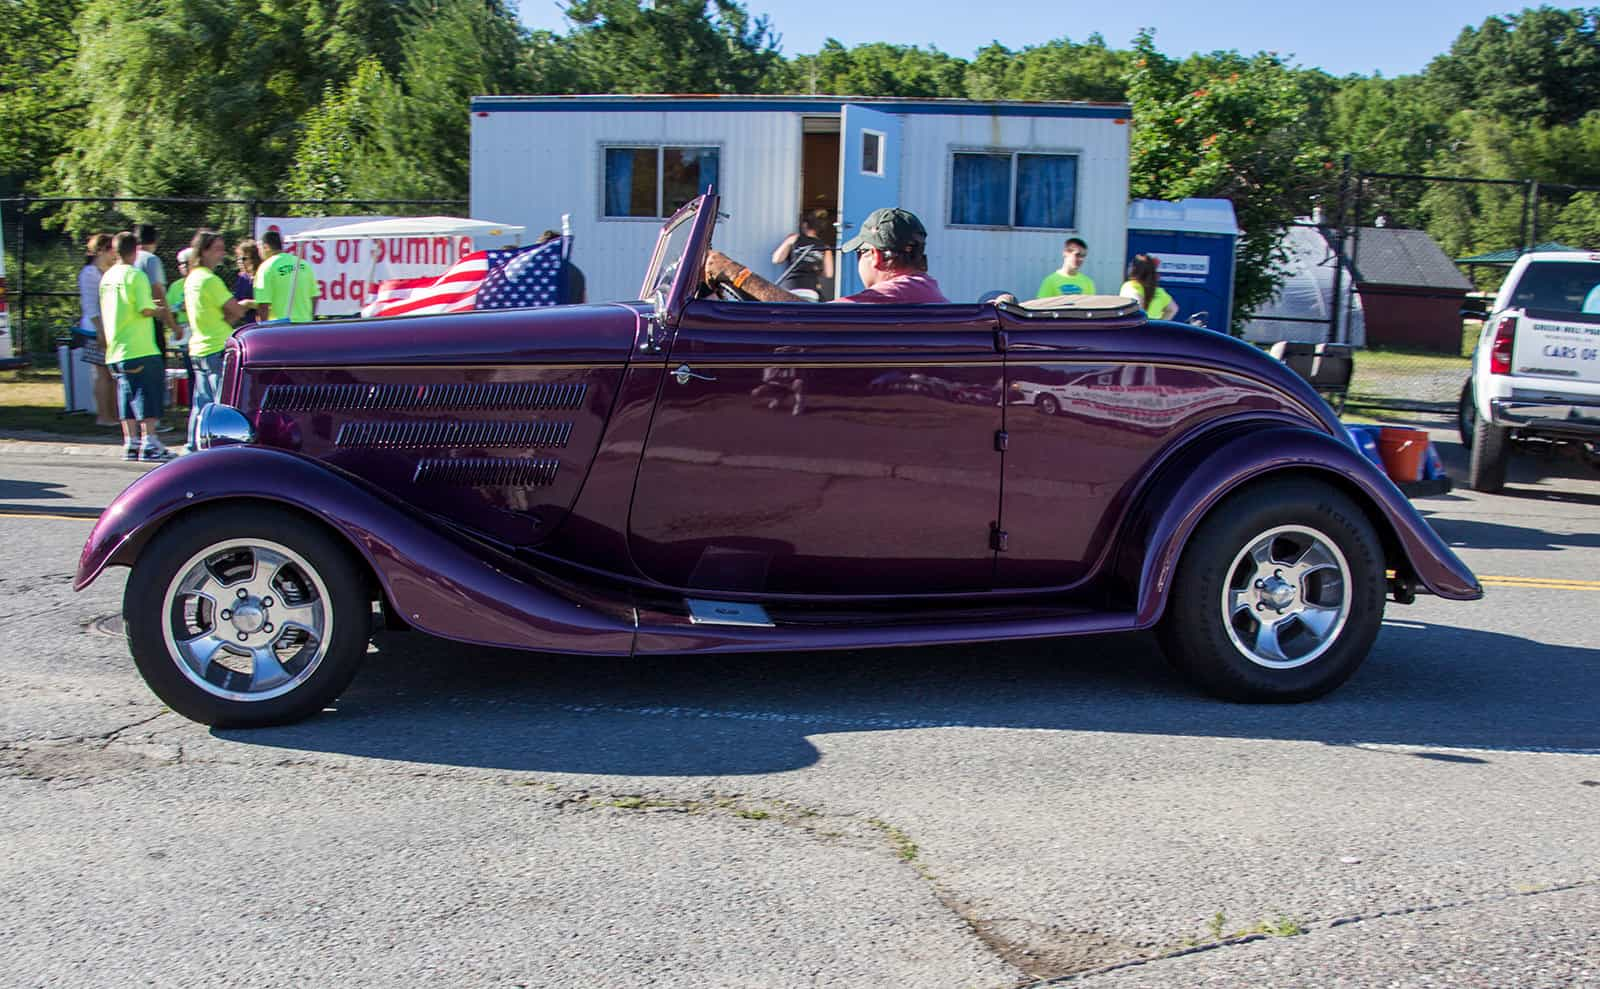 2016 Cars of Summer Car Show Worcester Purple Convertible